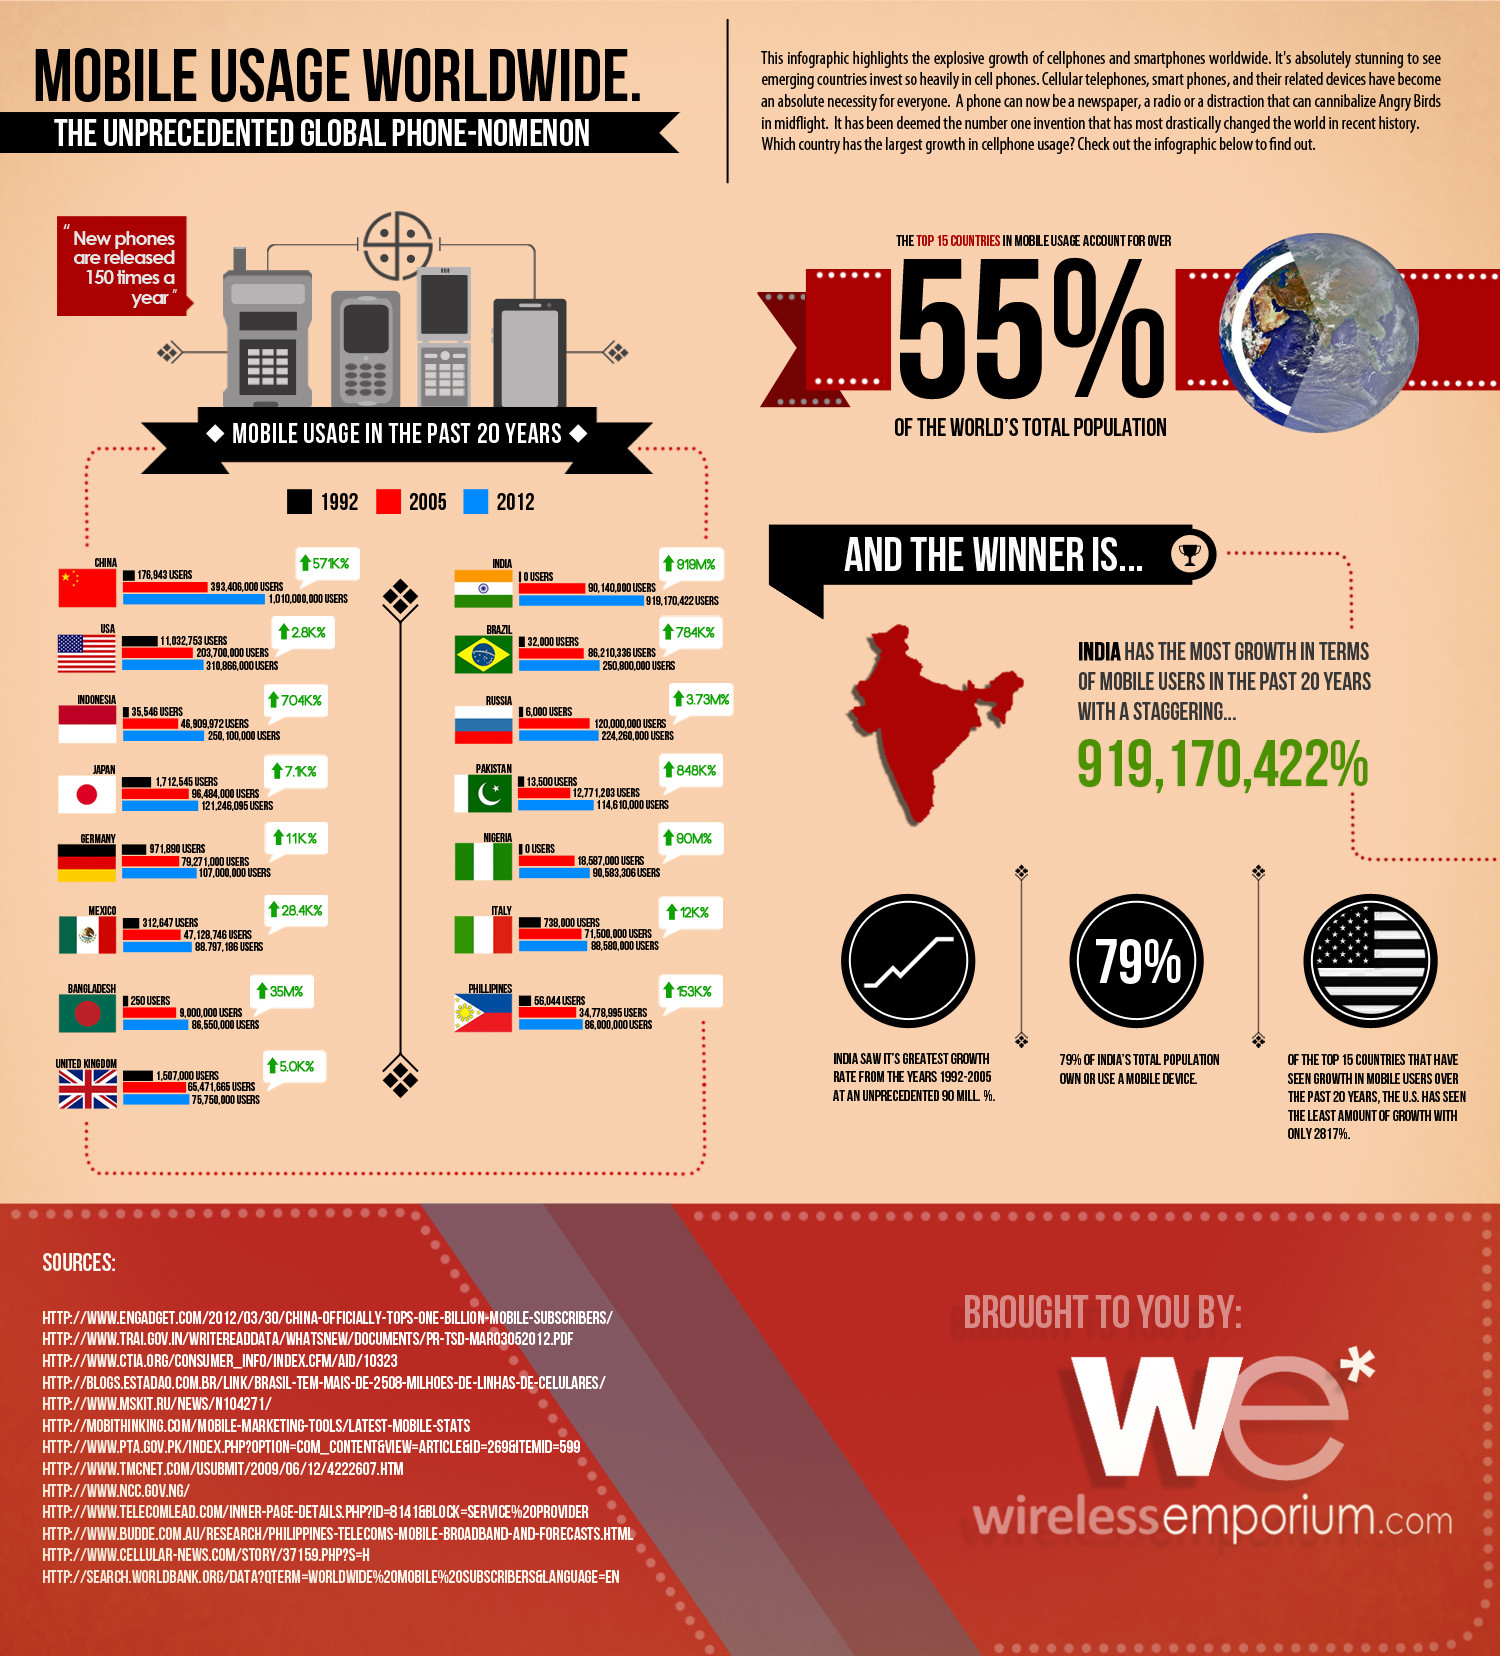 Mobile Usage Worldwide Infographic